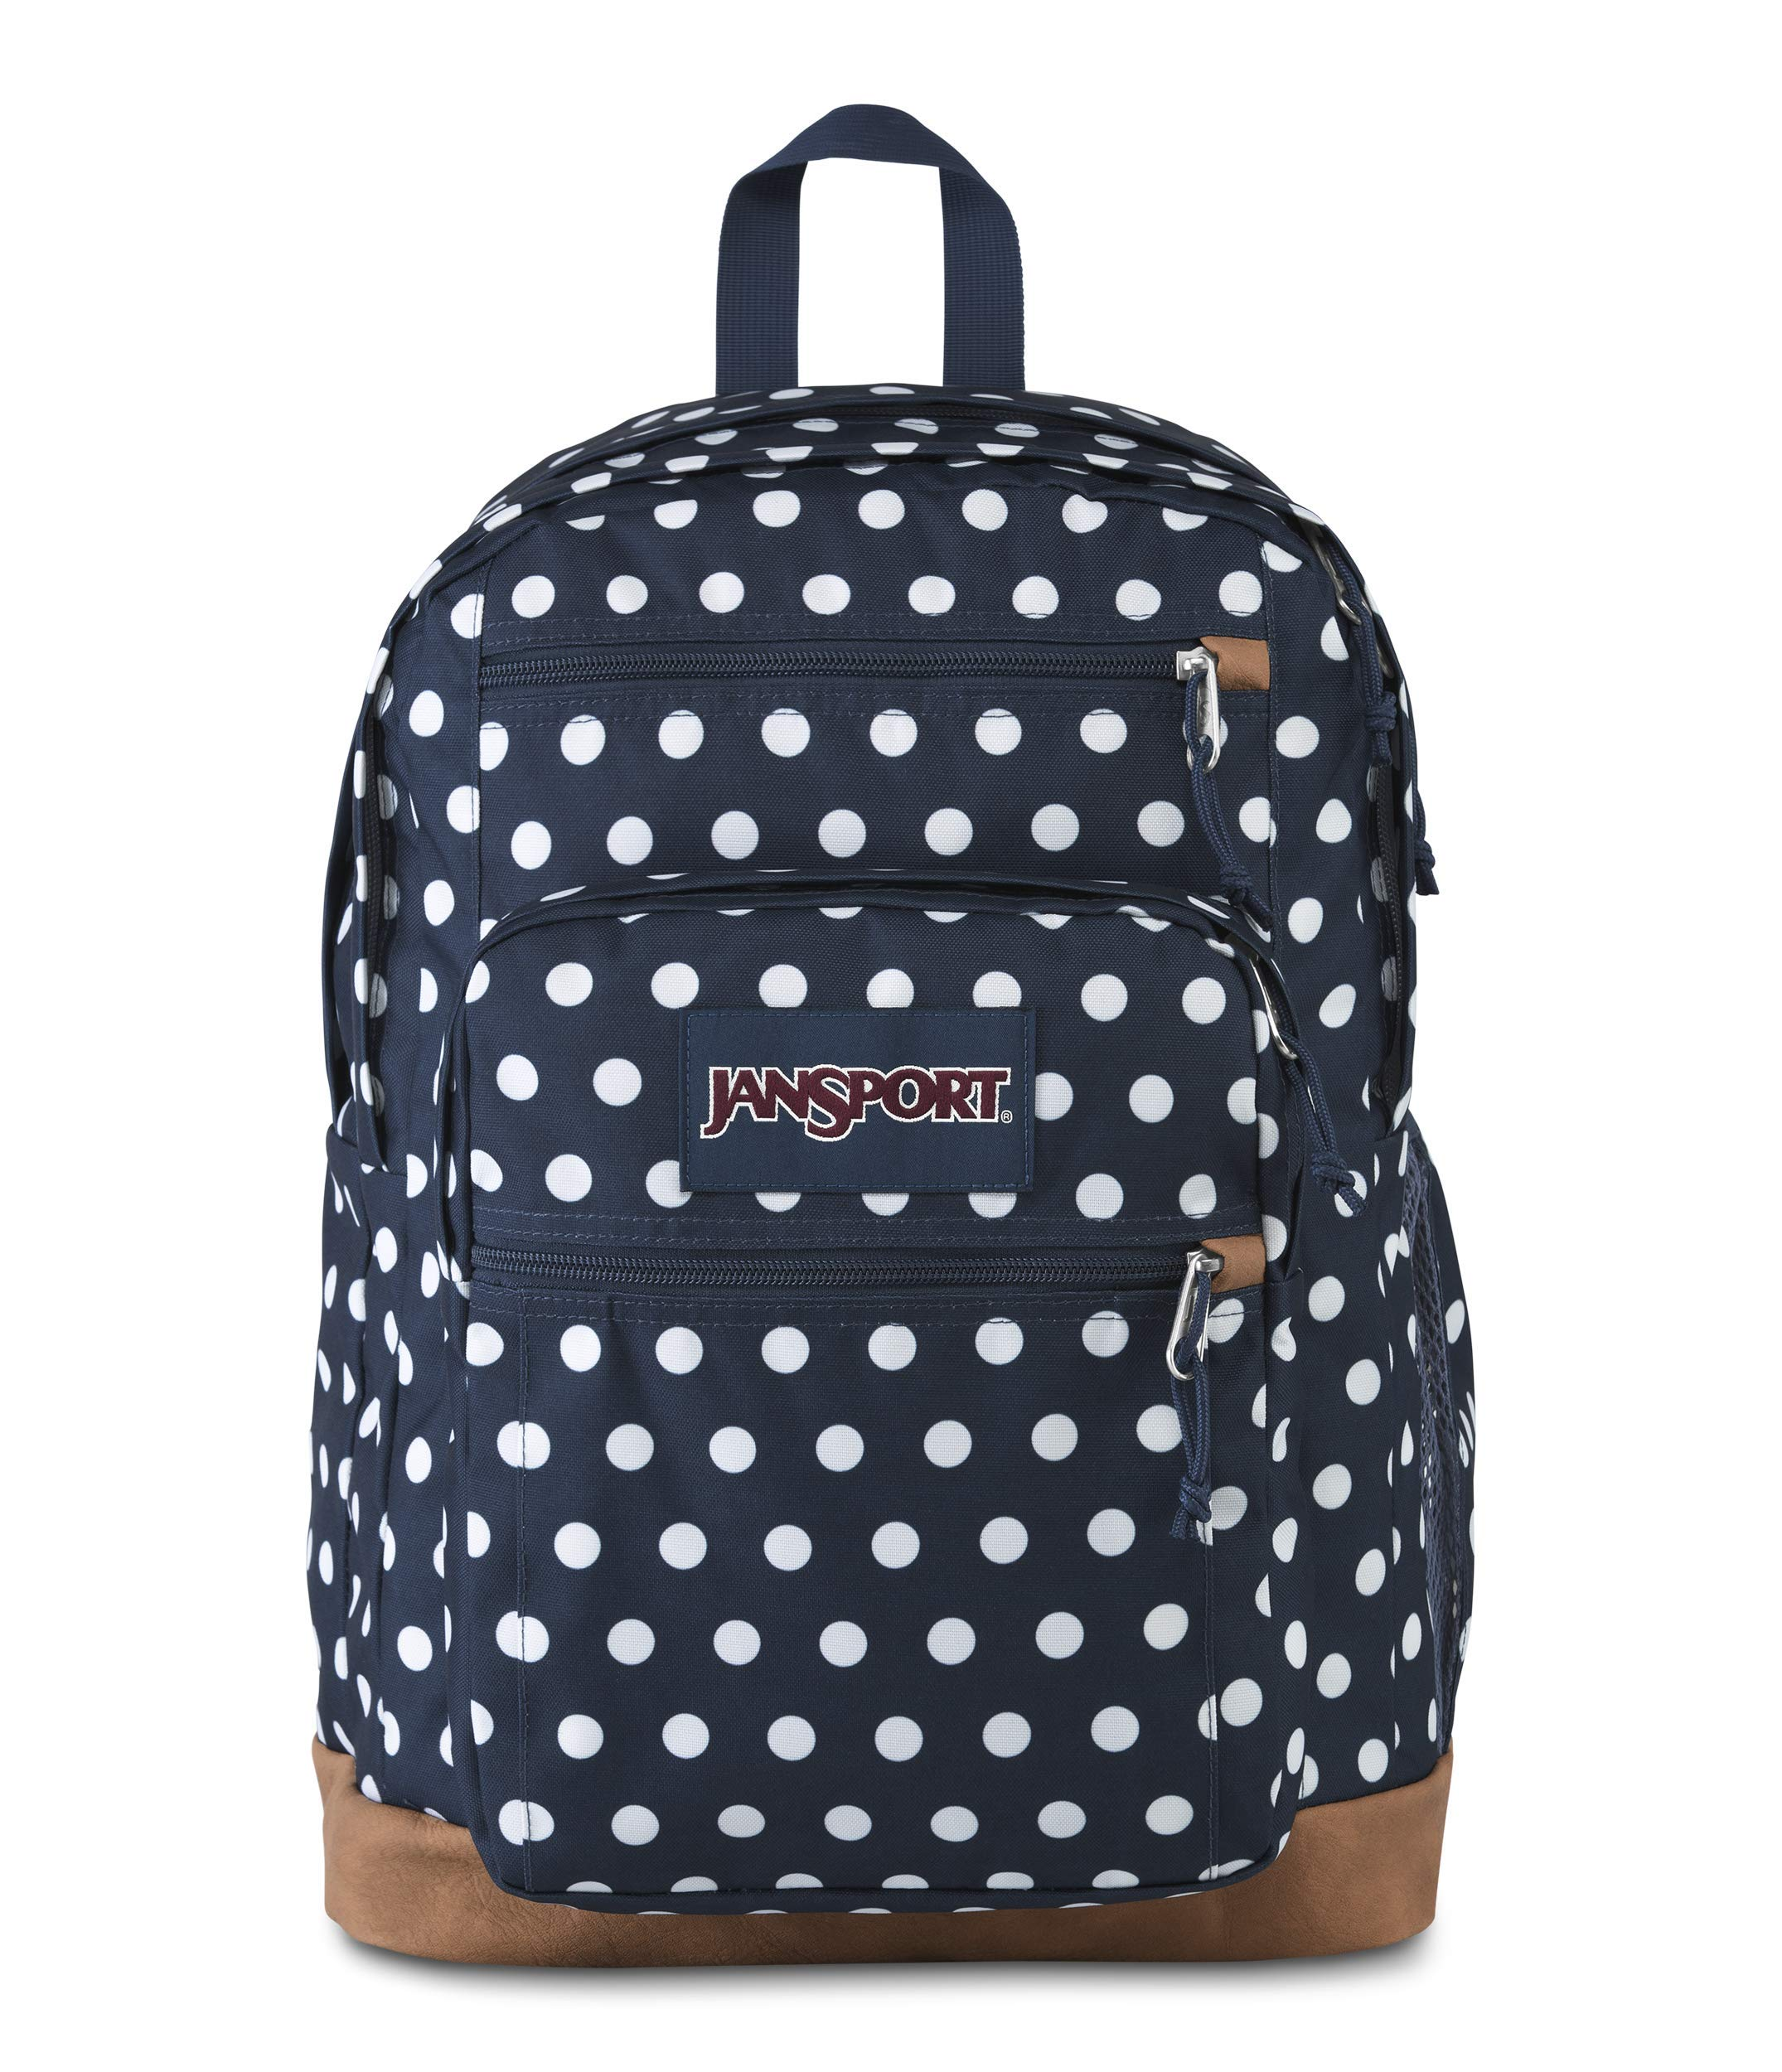 JanSport Cool Student 15-inch Laptop Backpack, Dark Denim Polka Dot by JanSport